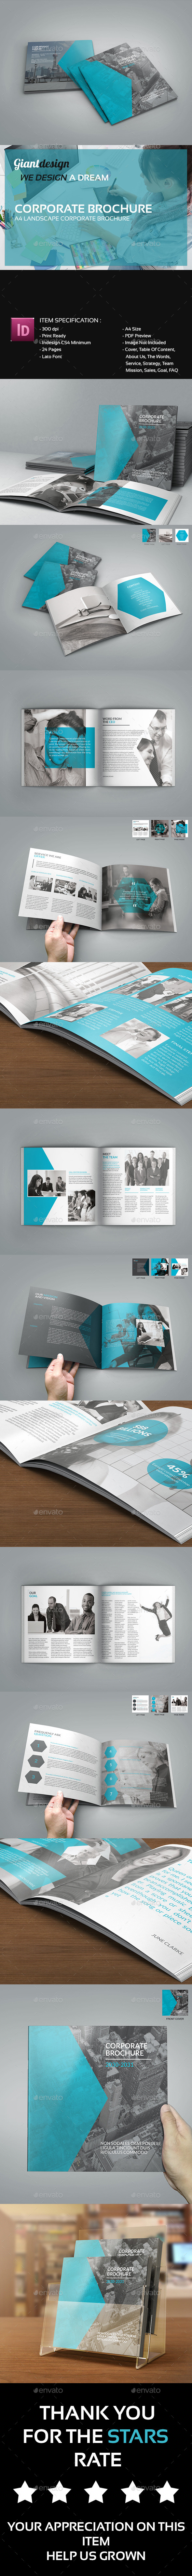 GraphicRiver Corporate Square Brochure 10401388